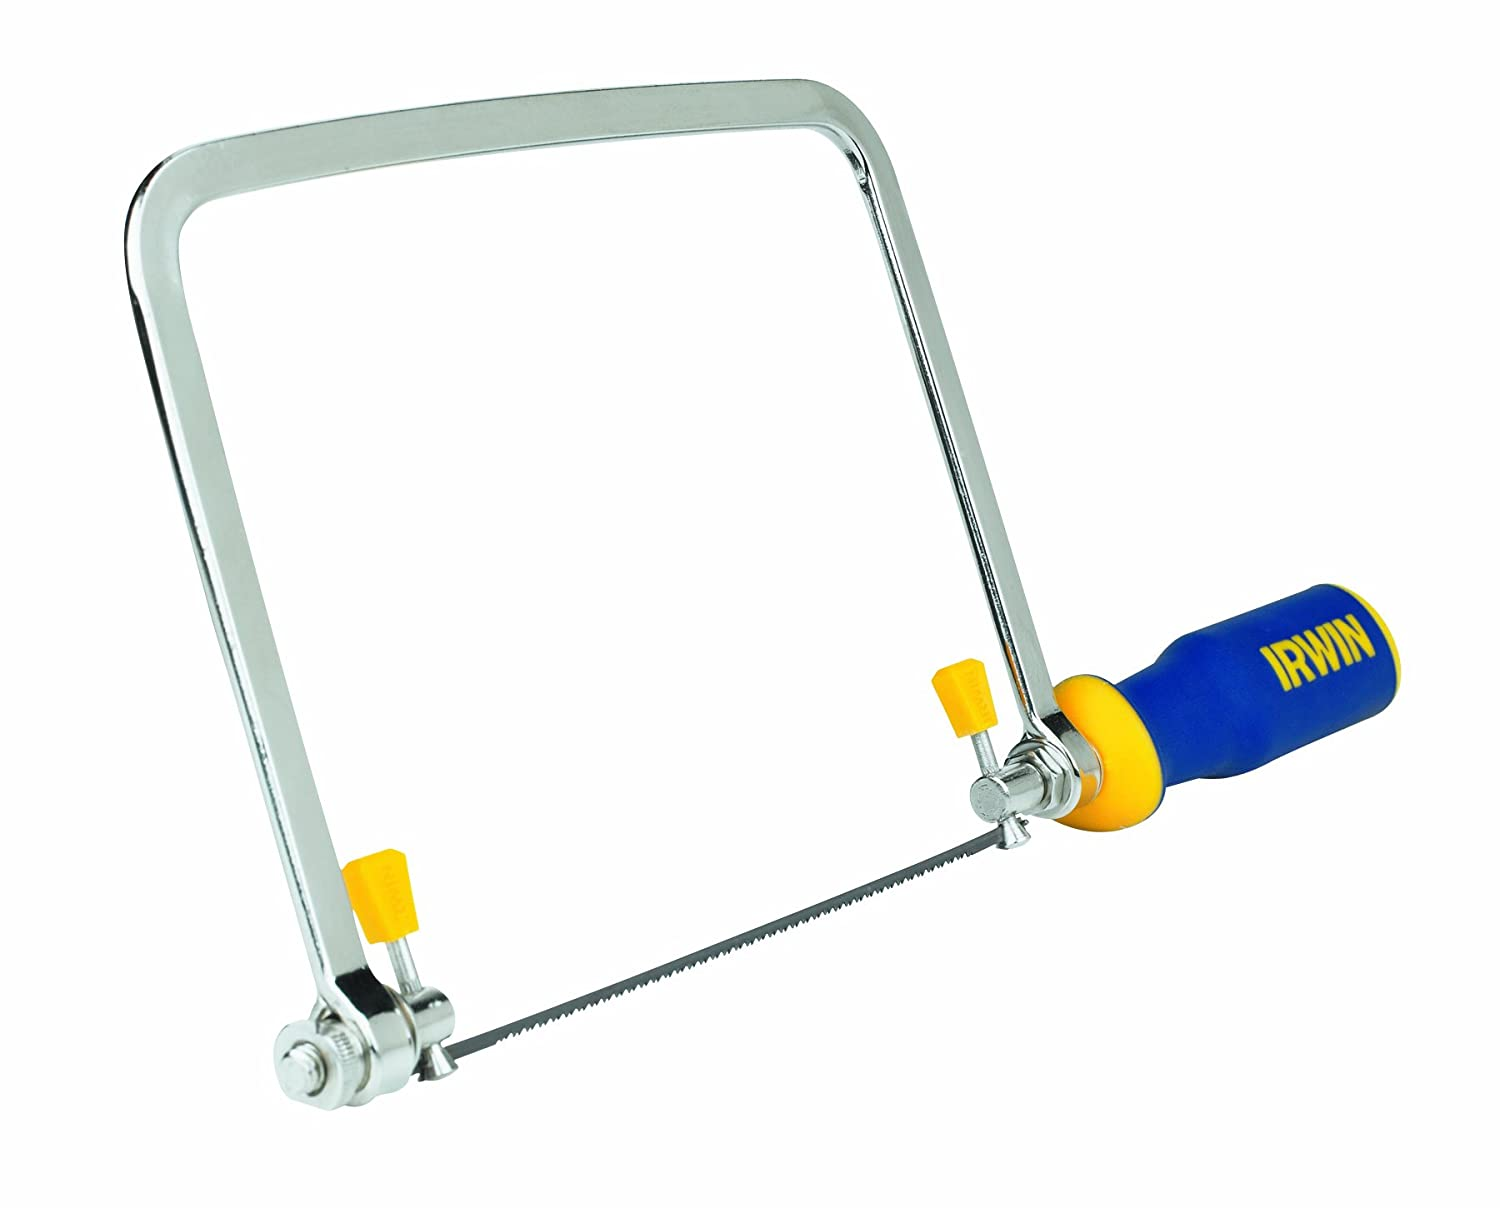 Irwin 2014400 protouch 6 12 inch coping saw amazon tools irwin 2014400 protouch 6 12 inch coping saw amazon tools home improvement greentooth Gallery